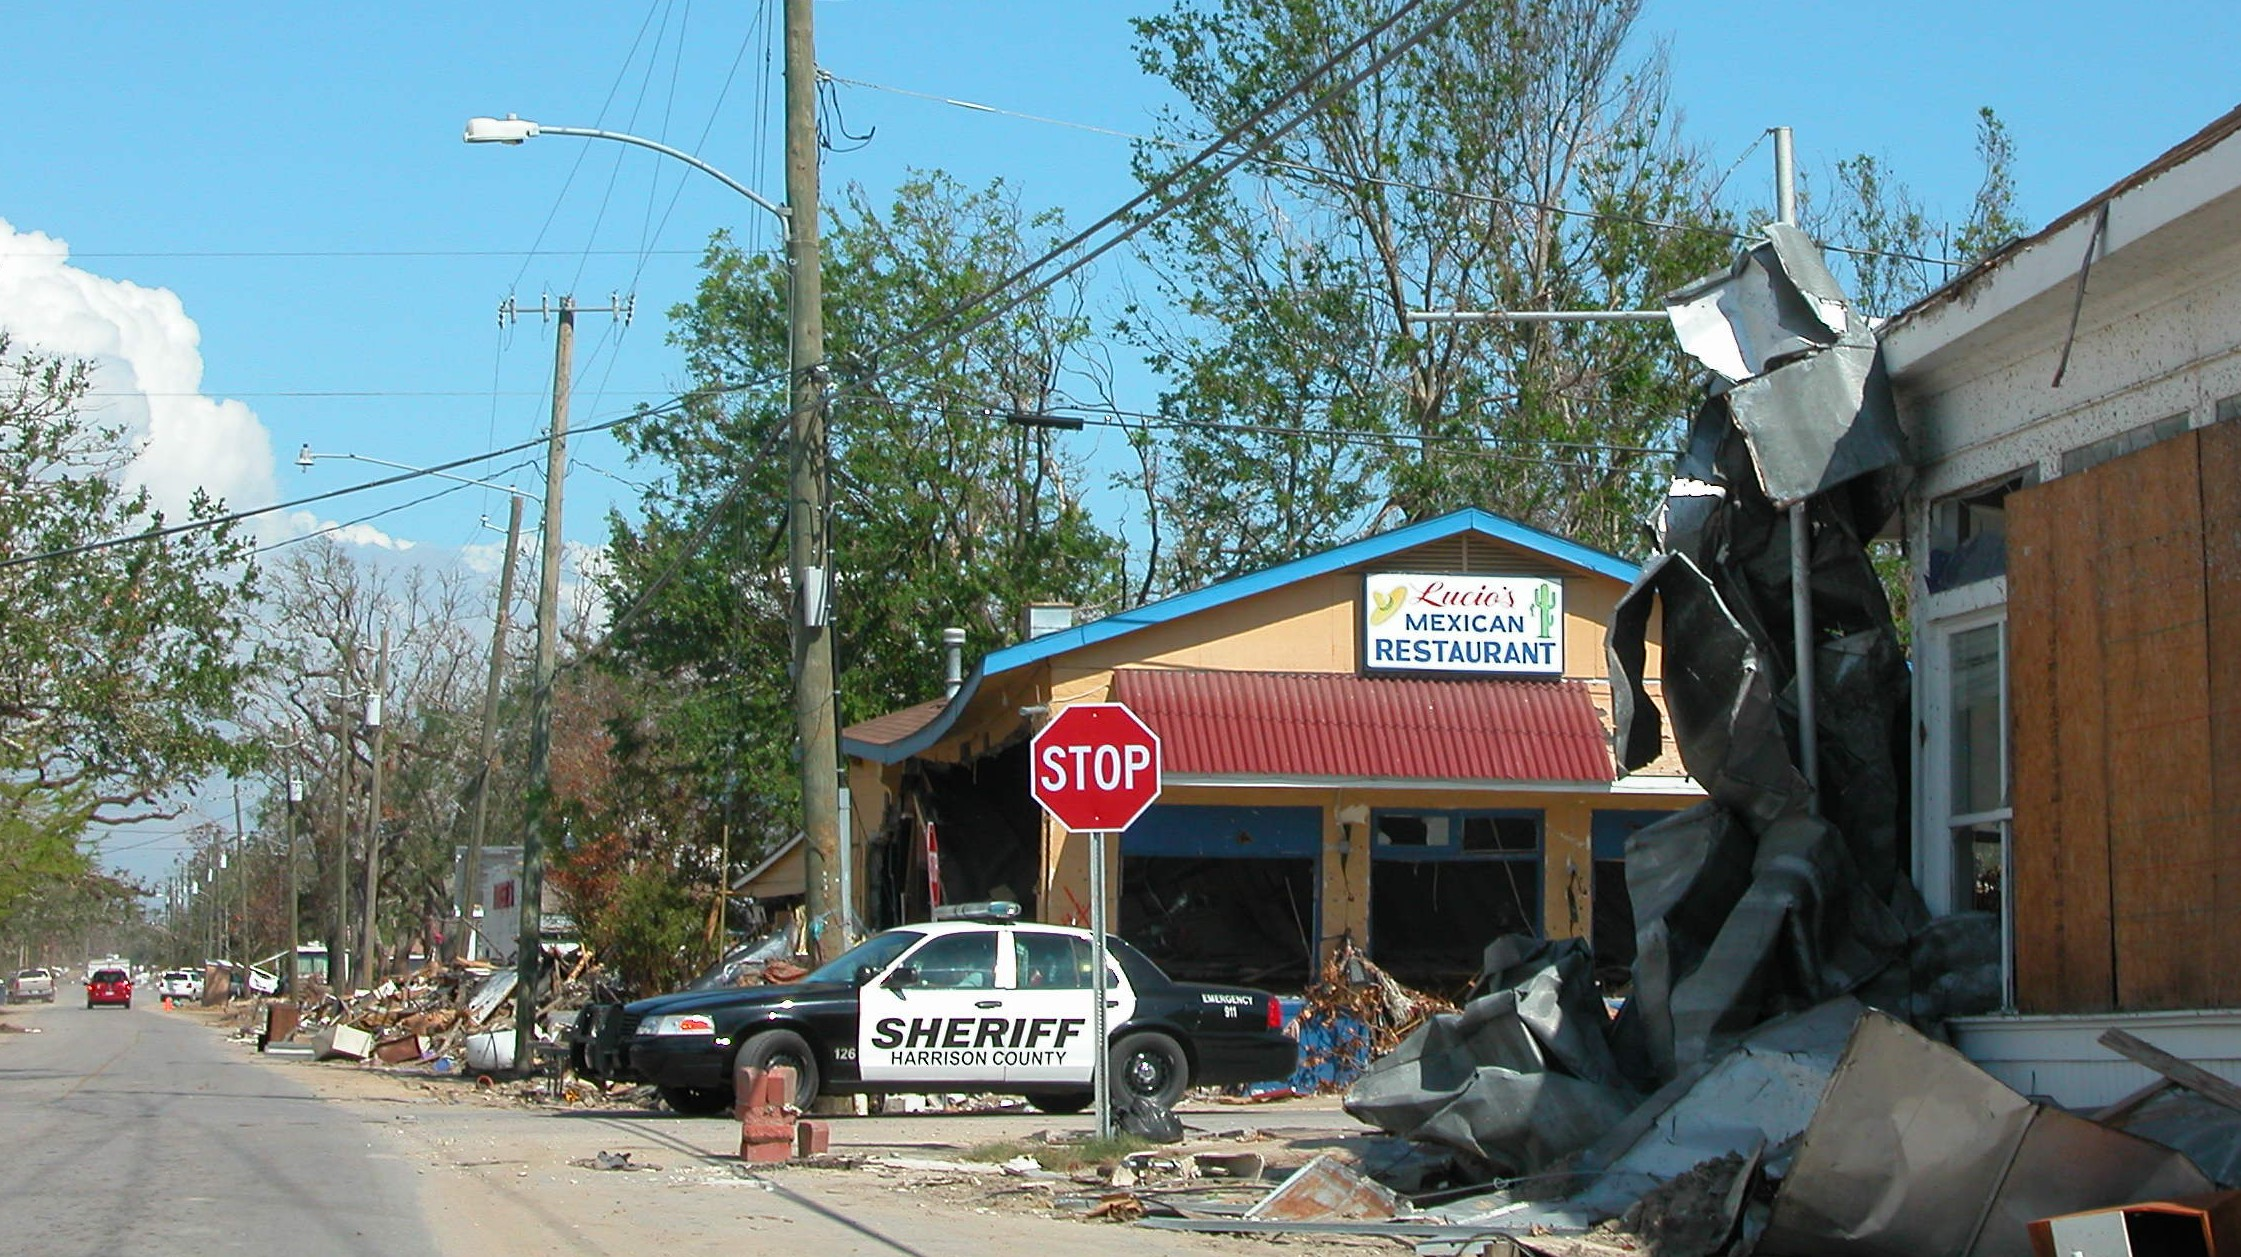 """18. Photo shows the heightened police presence in Long Beach, Mississippi in the aftermath of Katrina. Note the trash and debris lining the roadways.""""I couldn't imagine facing the debris and devastation every single day. It was everywhere, and there was no escaping it."""" - David Aft"""